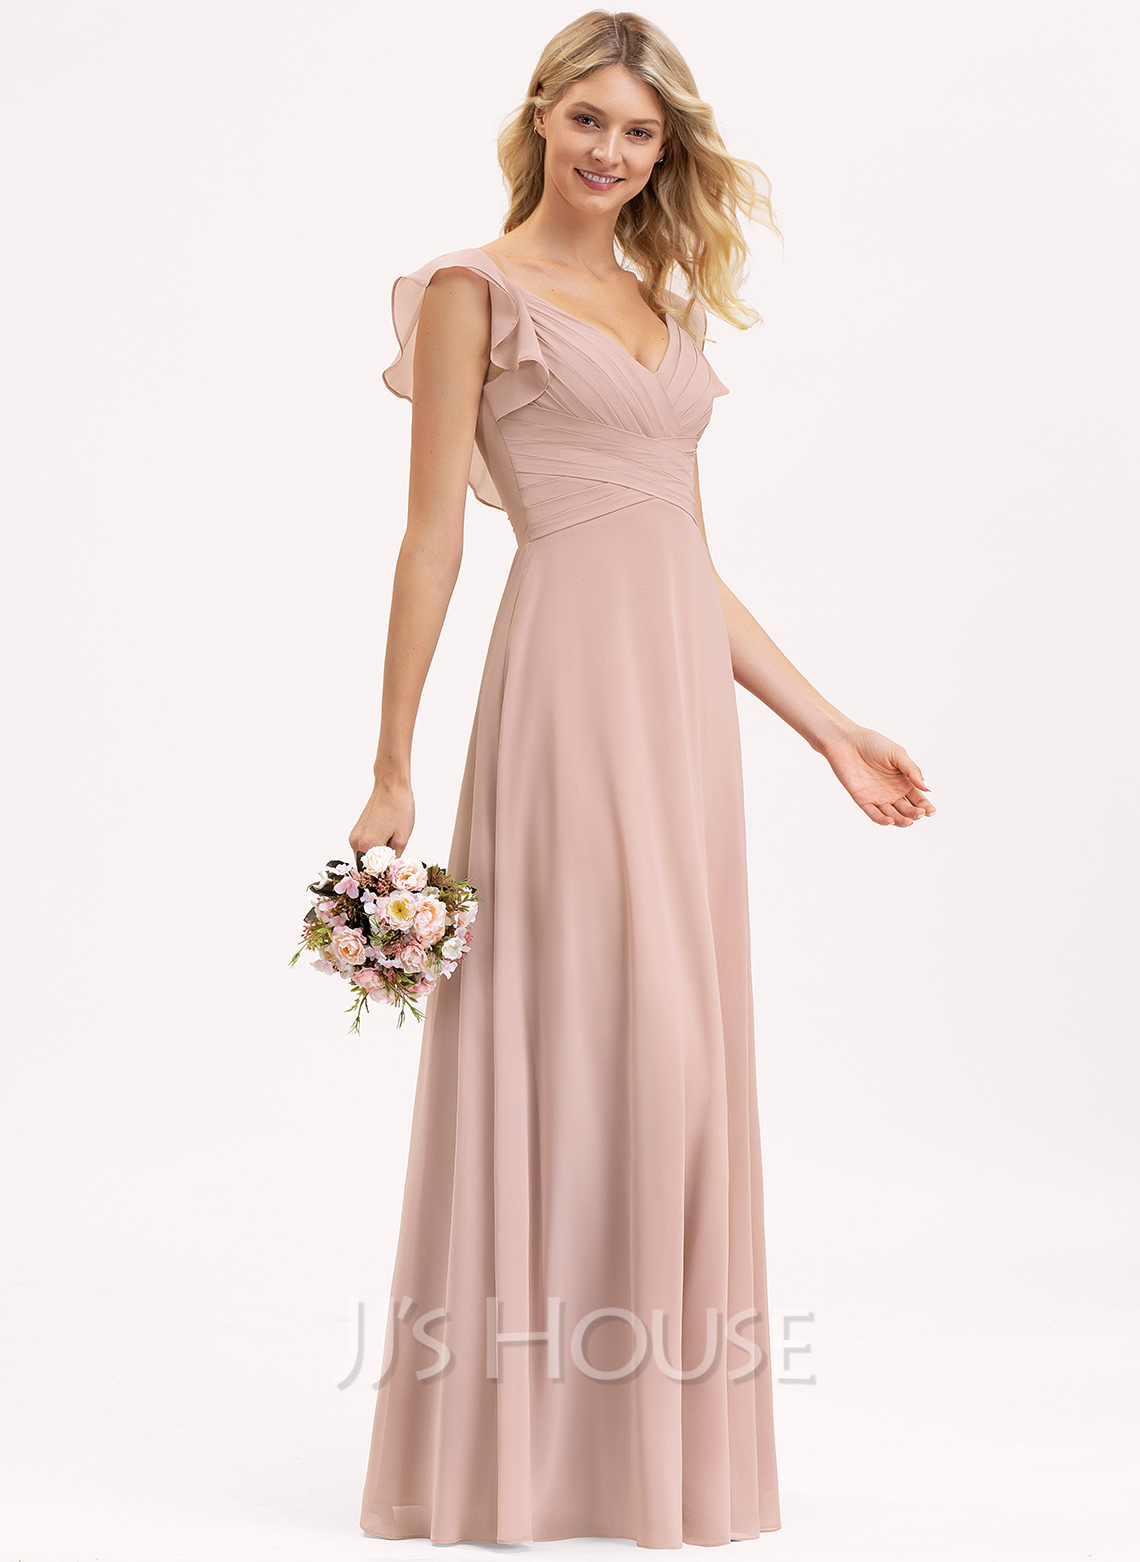 Empire V-neck Floor-Length Chiffon Bridesmaid Dress With Cascading Ruffles